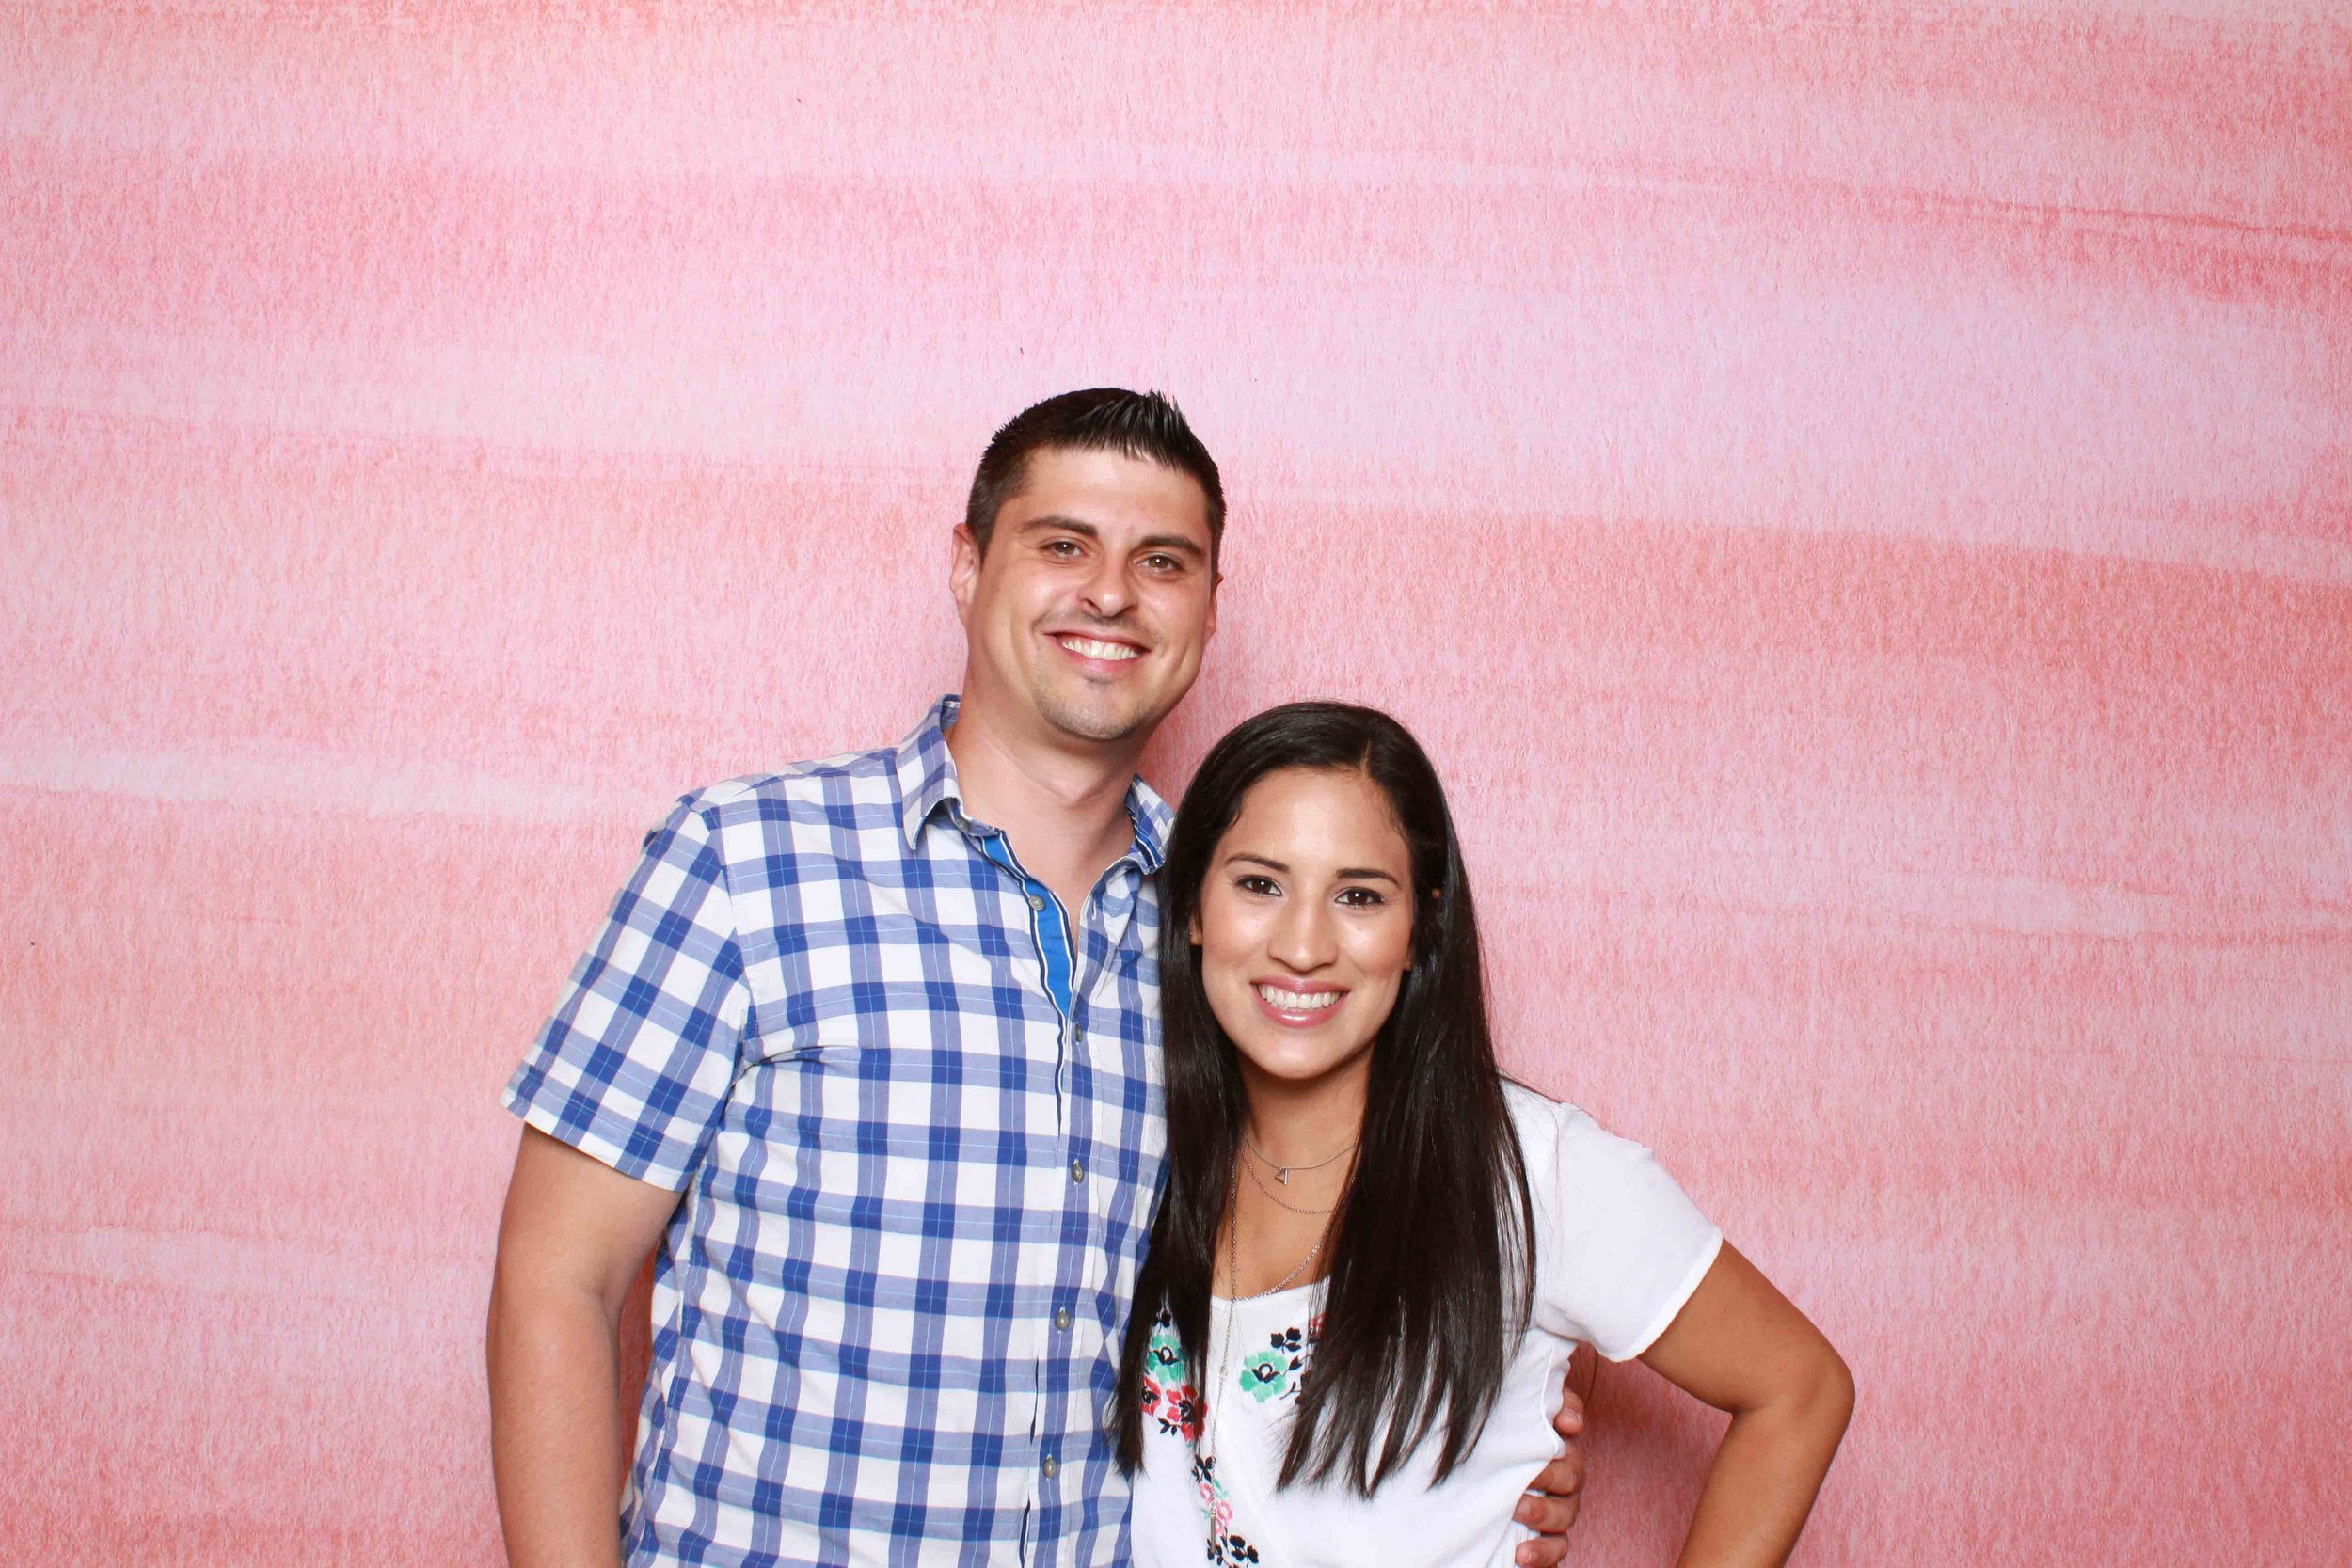 photo booth rental austin-17-2.jpg